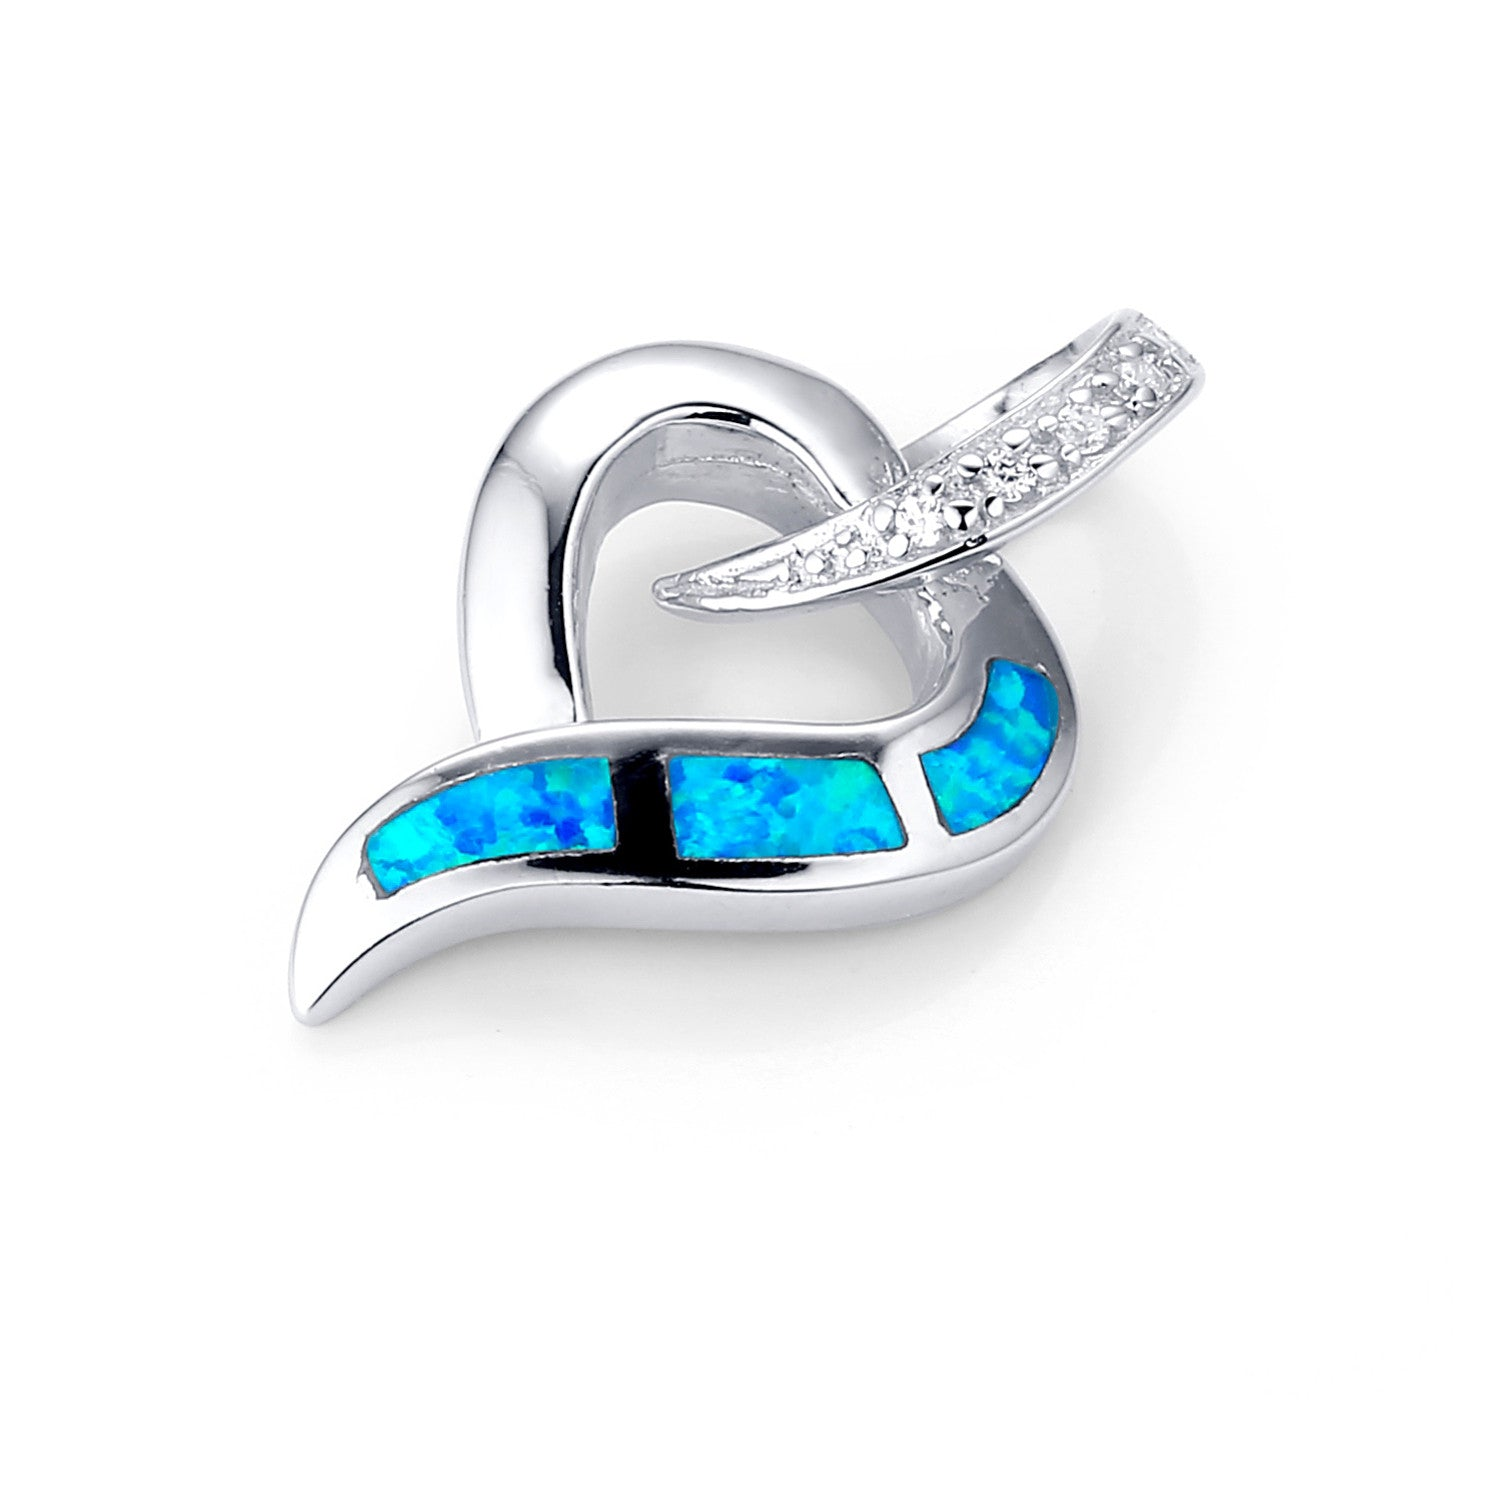 necklace pendant silver sterling junxin brand necklaces new pendants women design opal fashion cat blue products fire wonderful